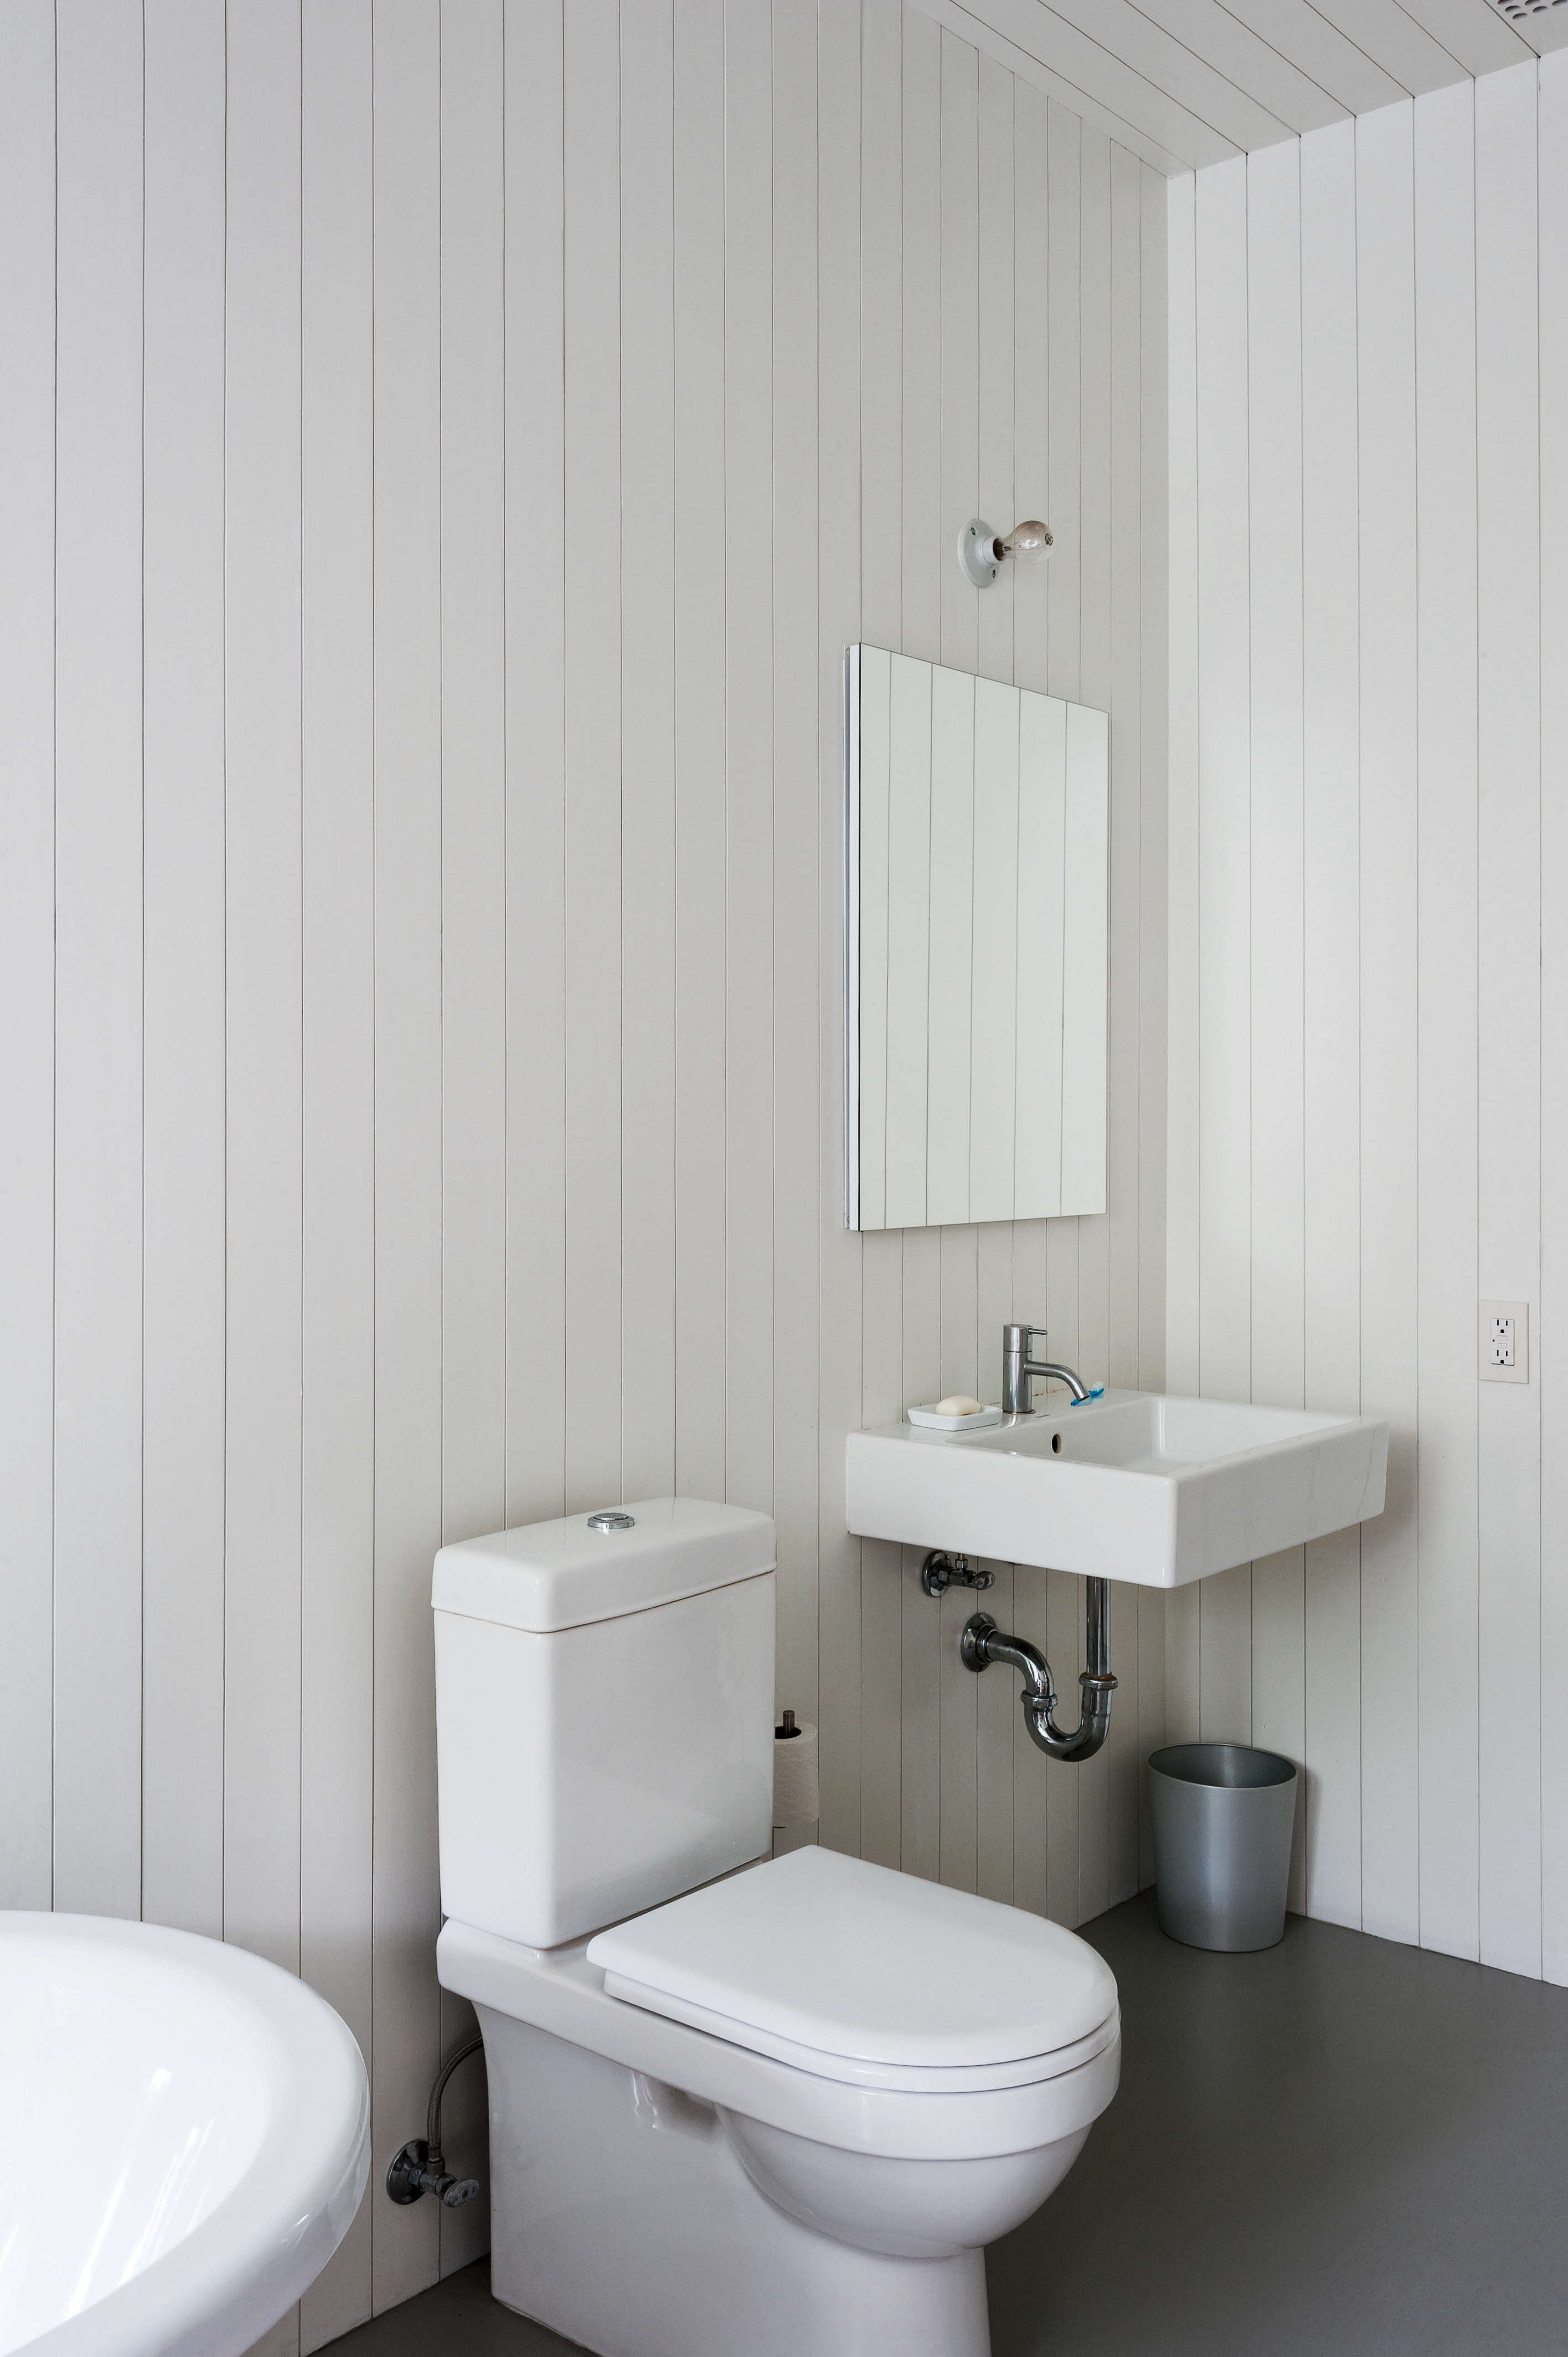 Nordic Beauty A Brooklyn Townhouse Reinvented With Styleand - Remodelista bathroom